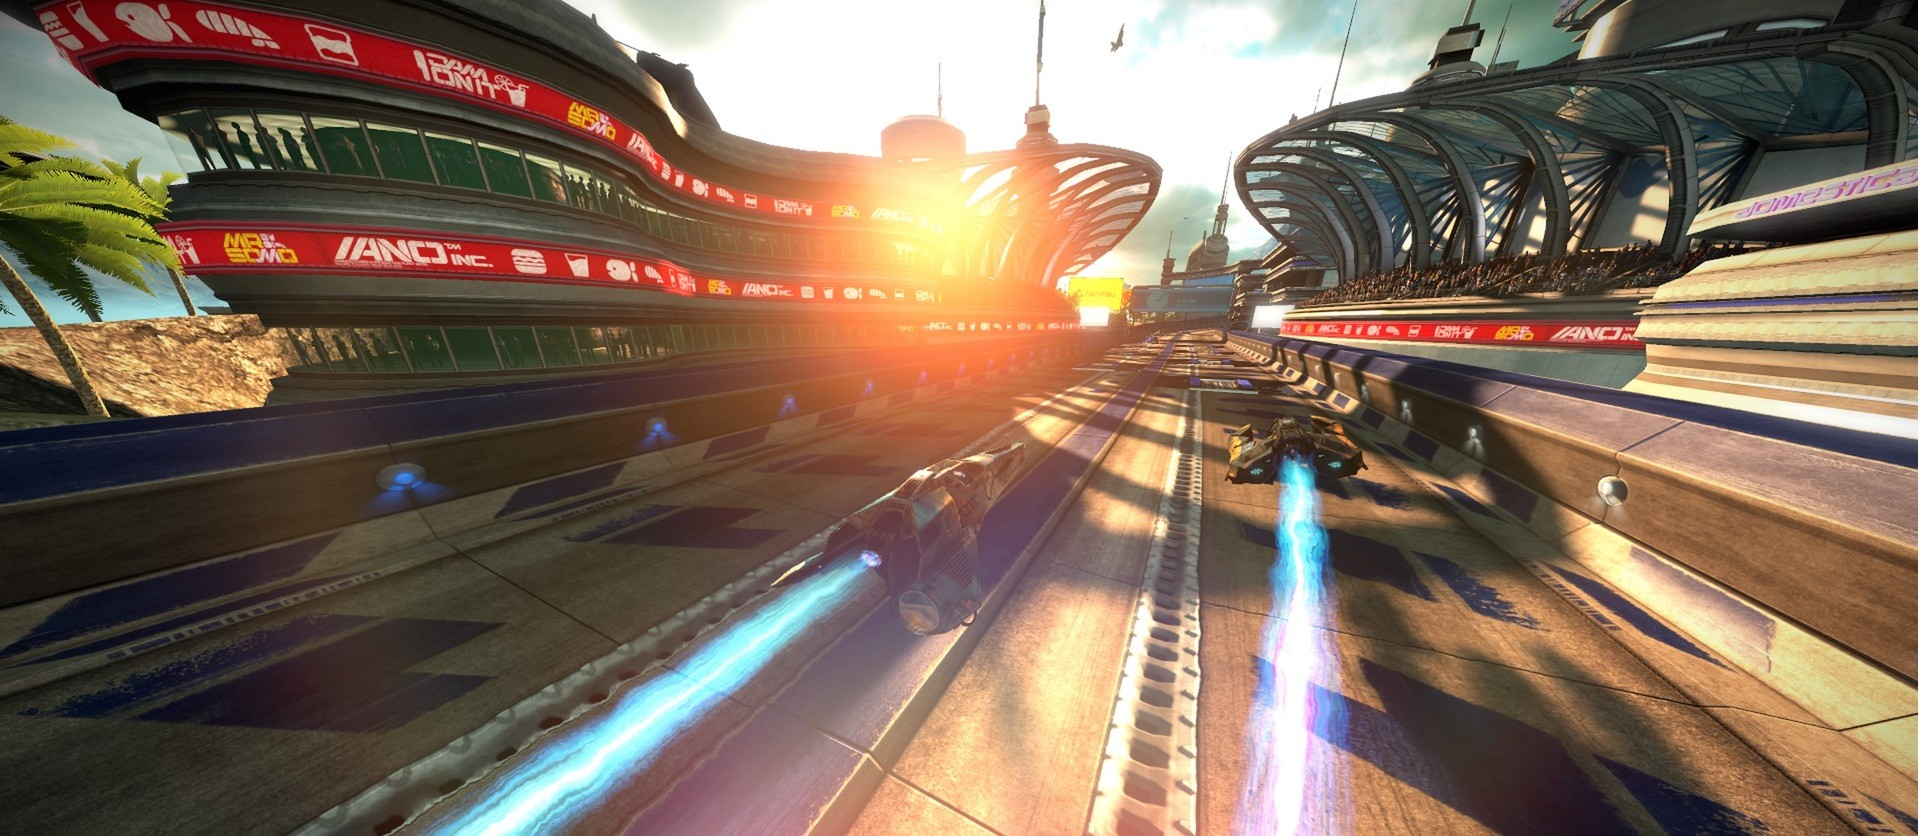 WipEout Omega PS4